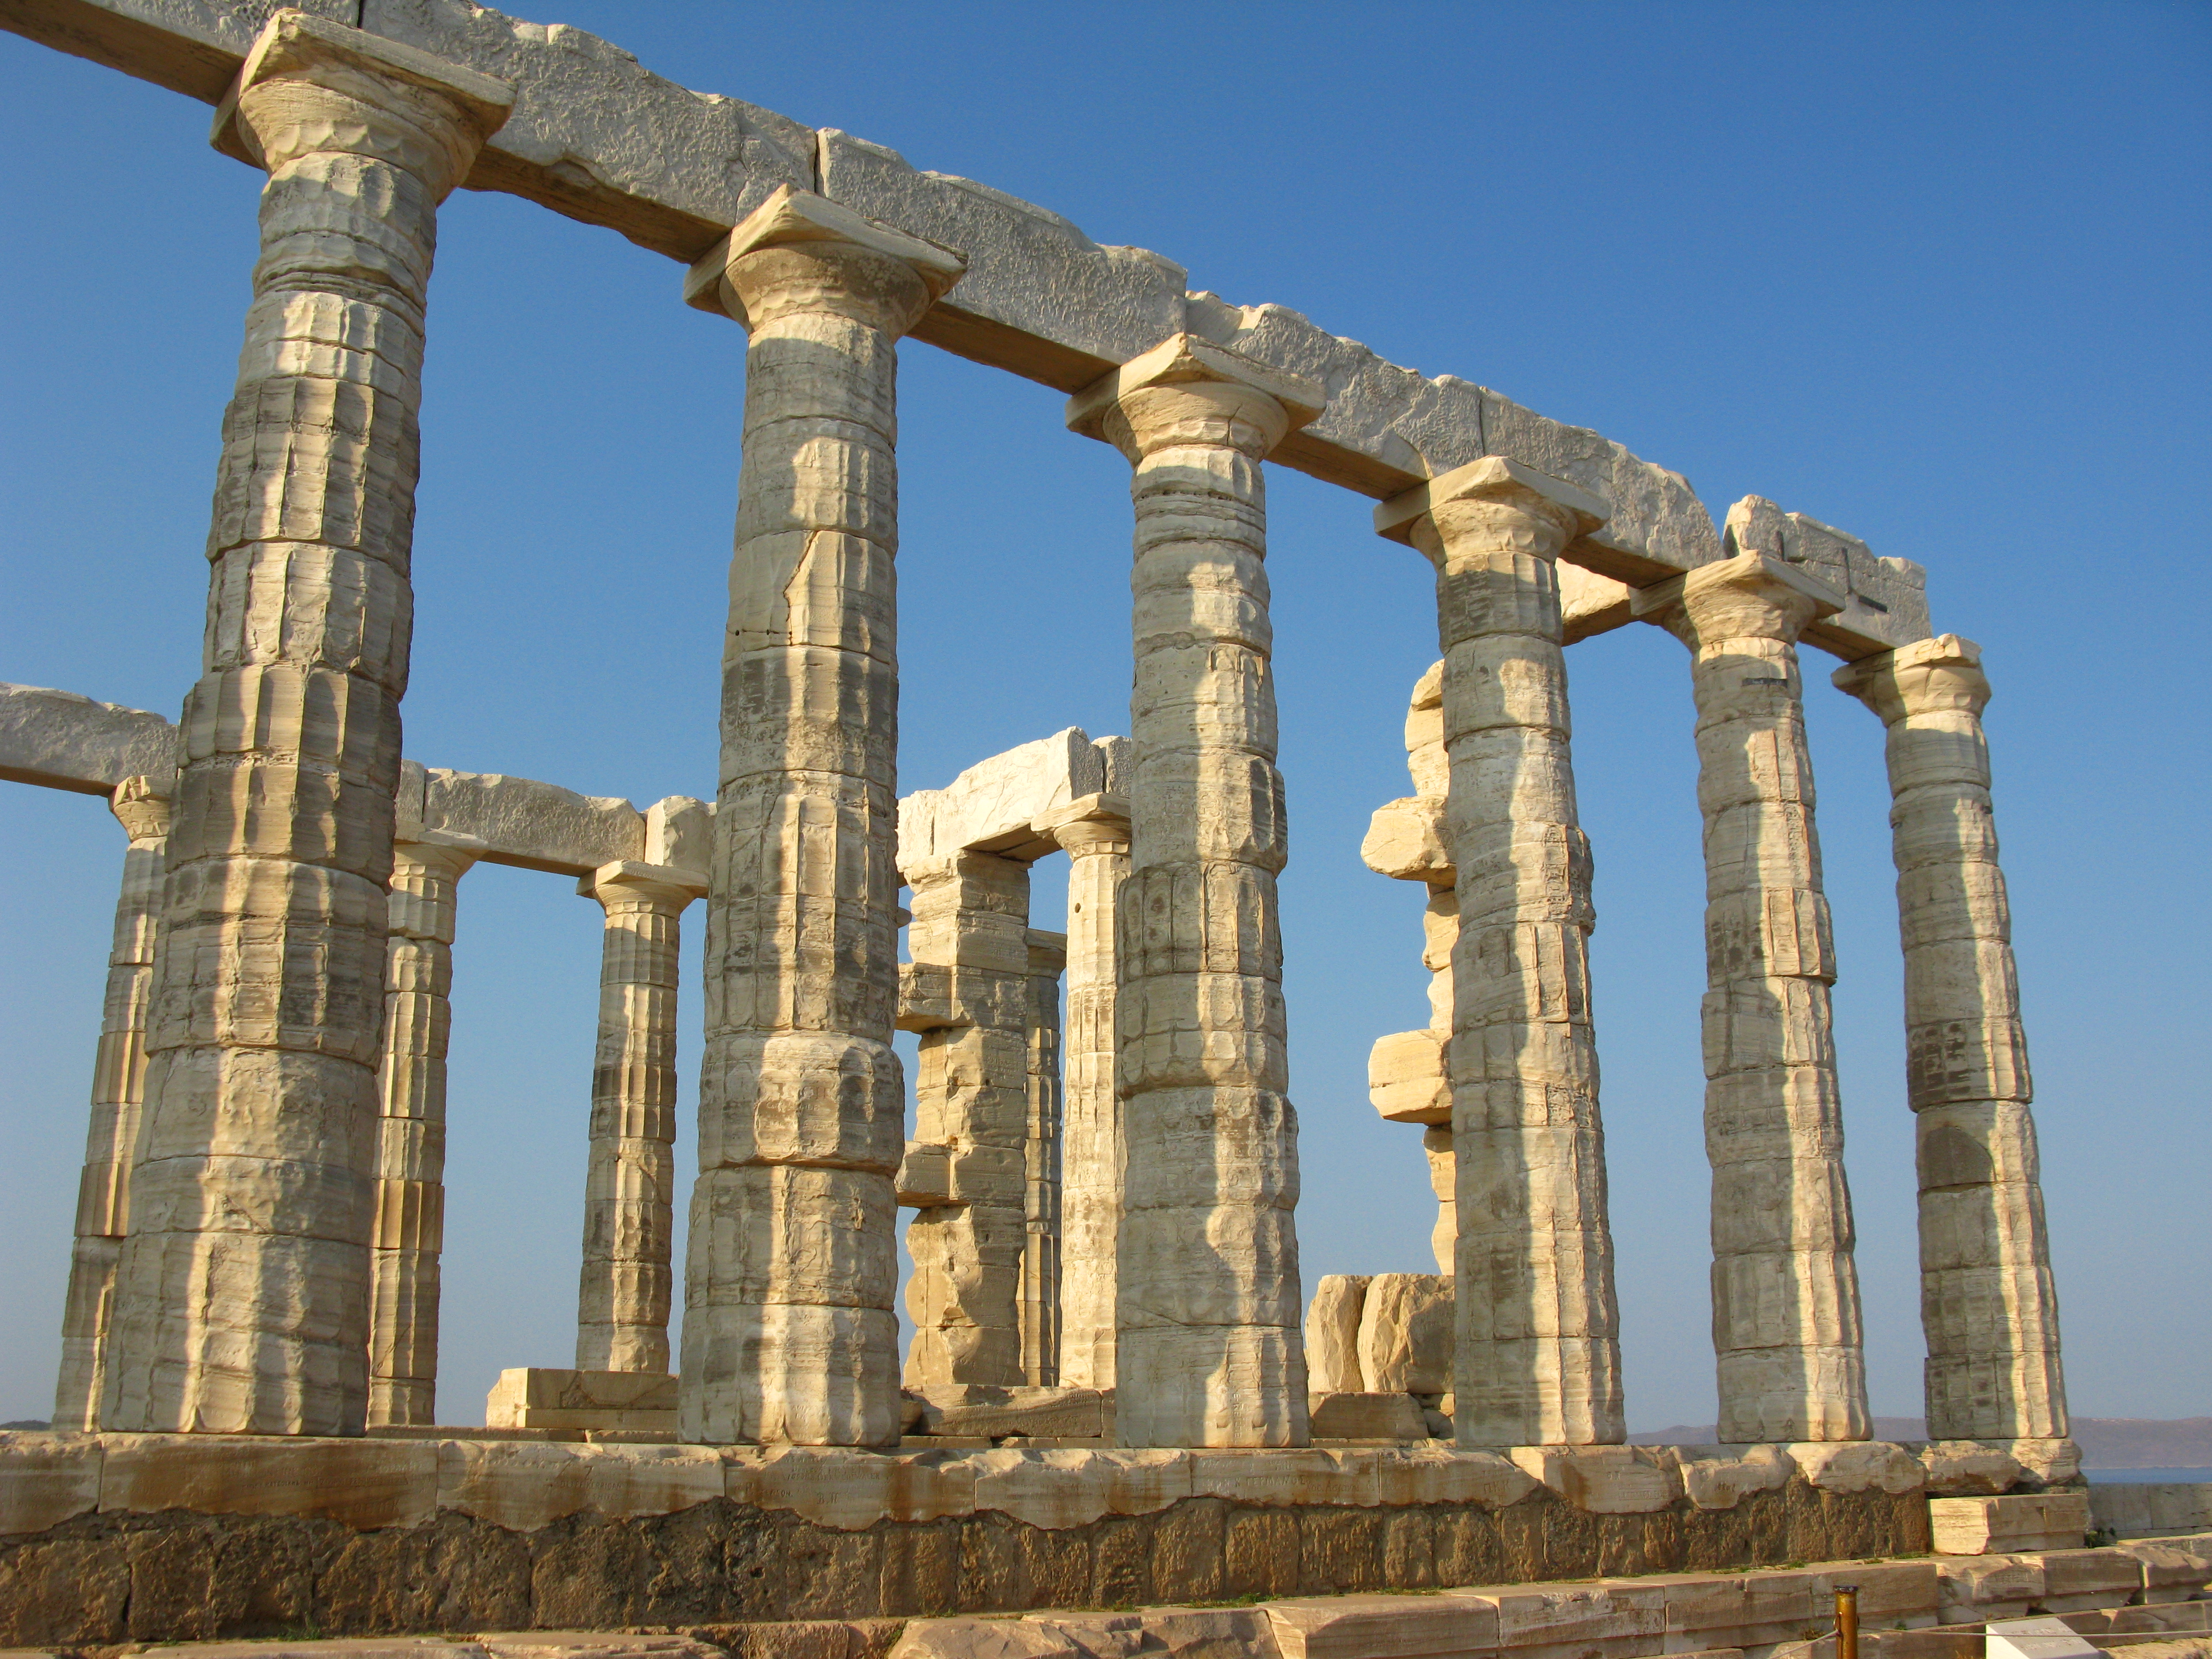 File:Temple of Poseidon, Sounio, Greece (3734153787).jpg ...